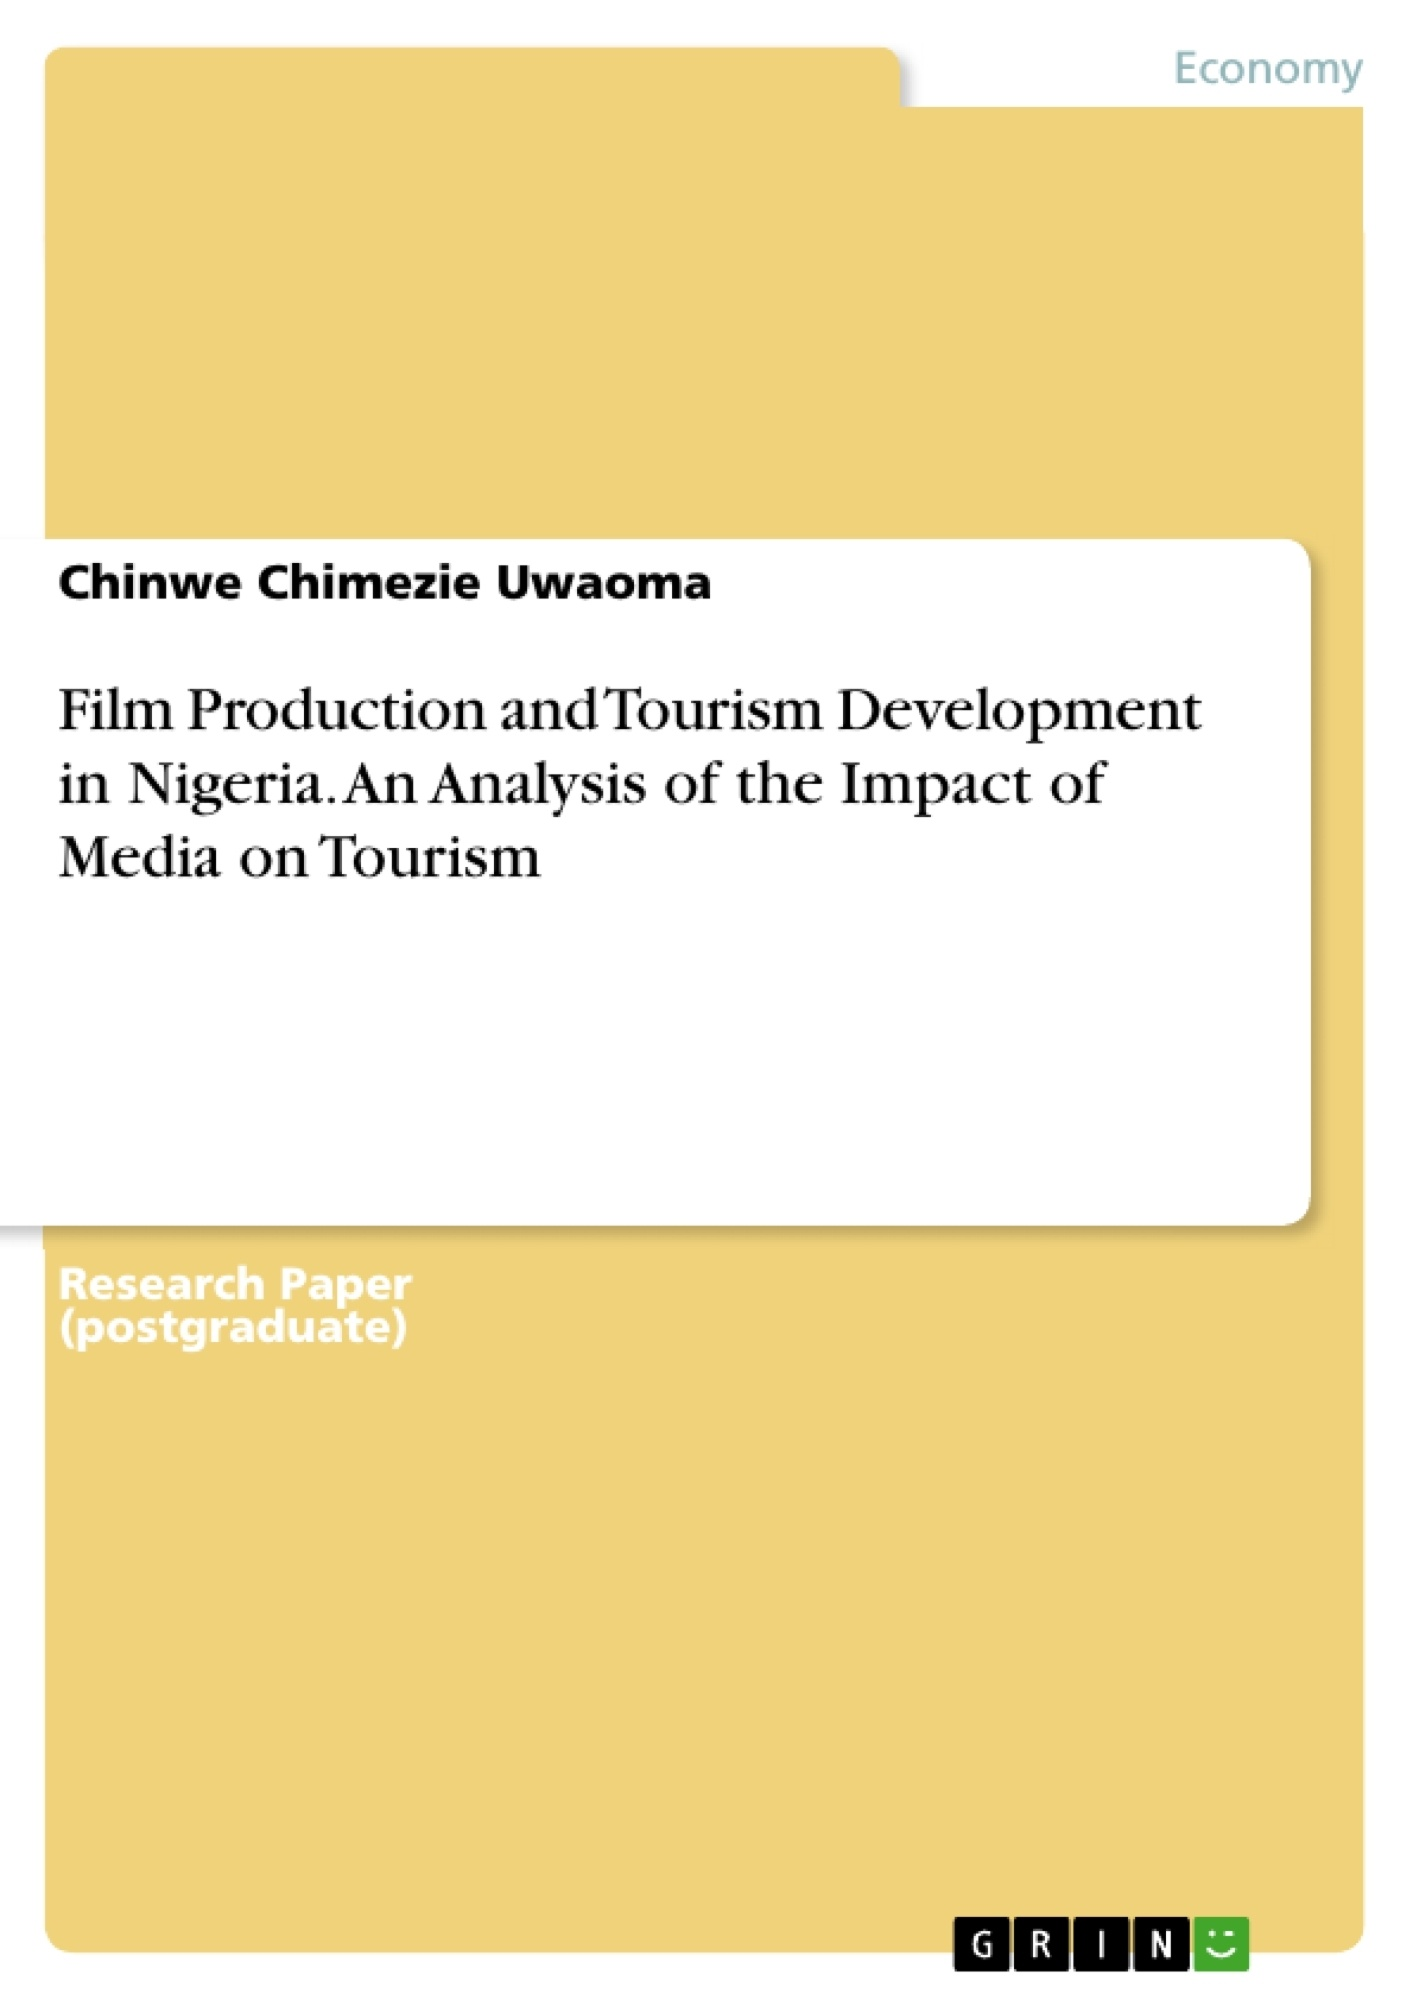 Title: Film Production and Tourism Development in Nigeria. An Analysis of the Impact of Media on Tourism